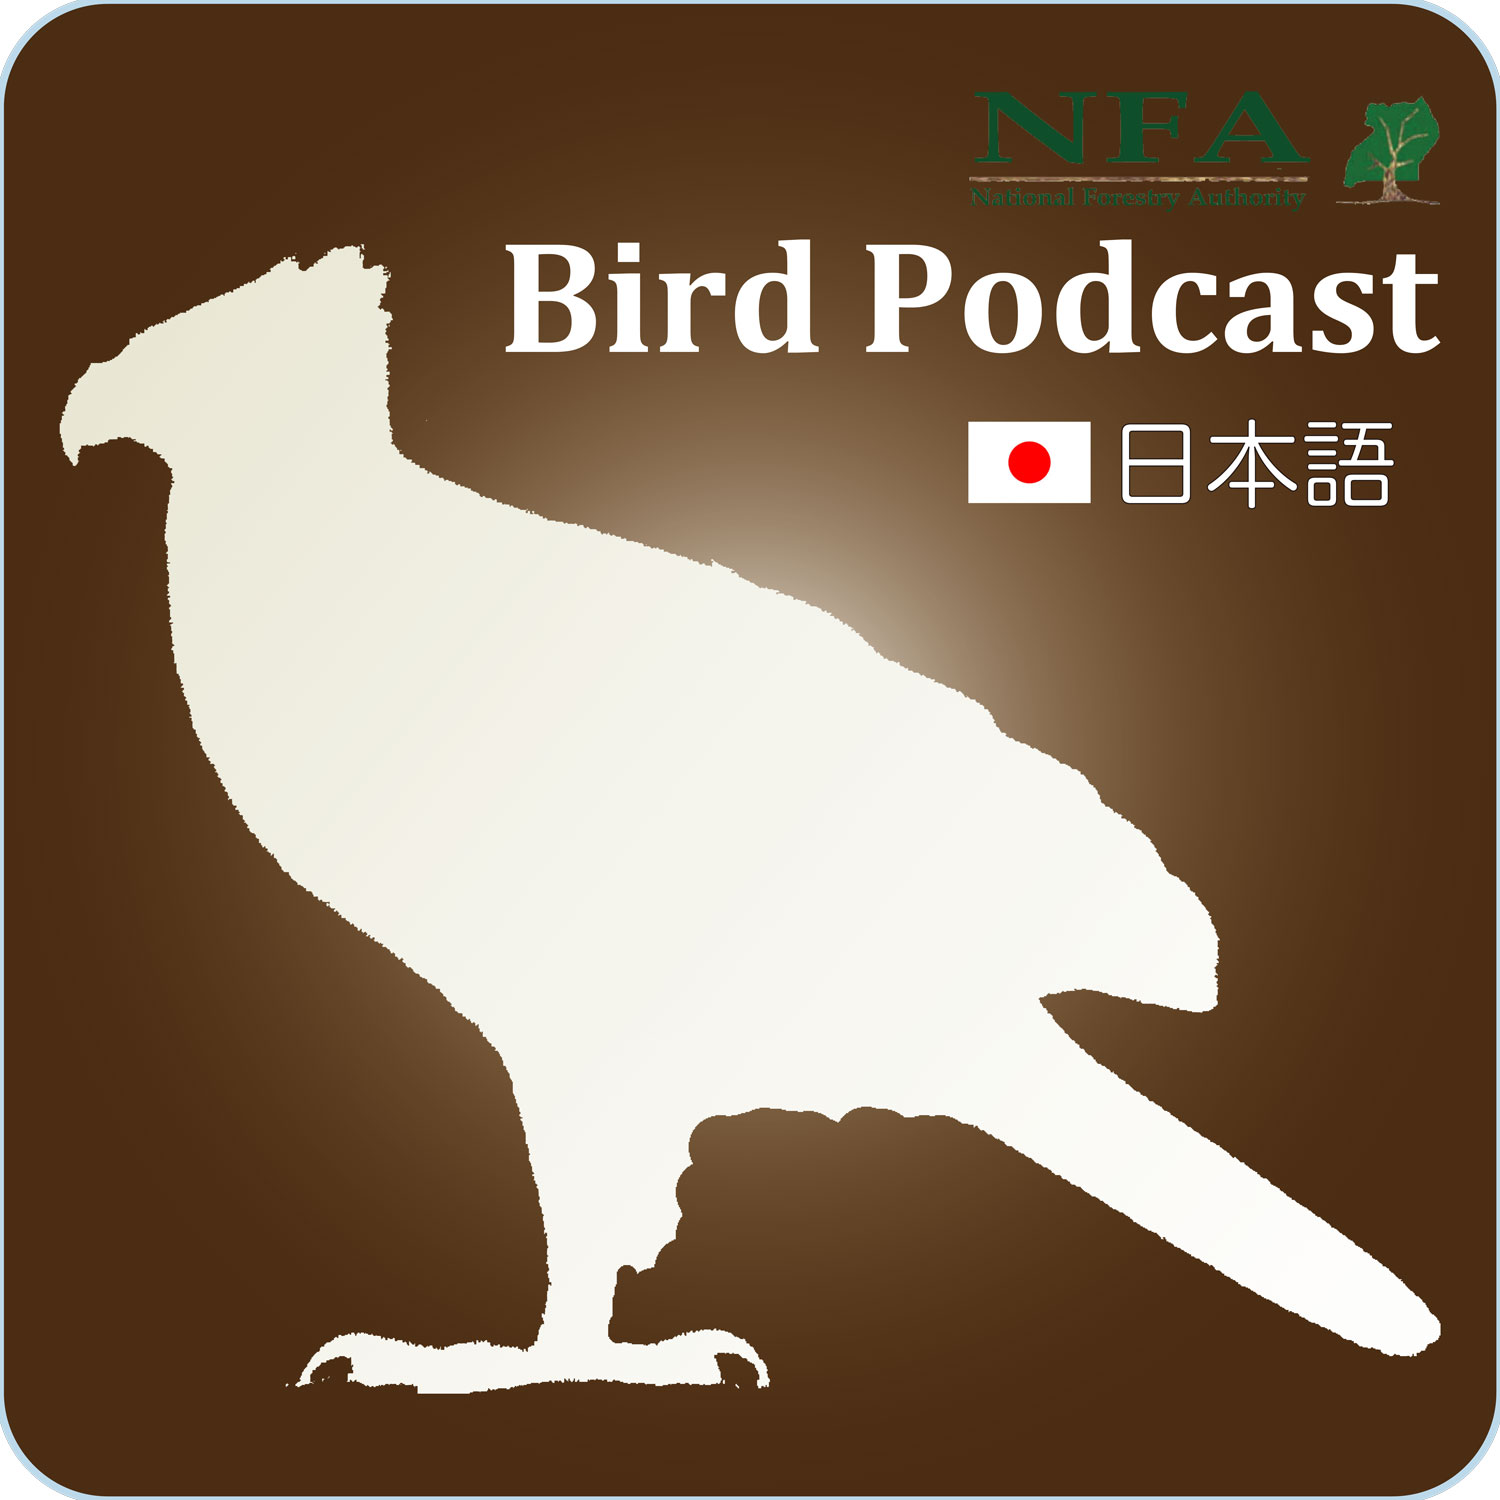 NFA Bird Podcast 日本語版